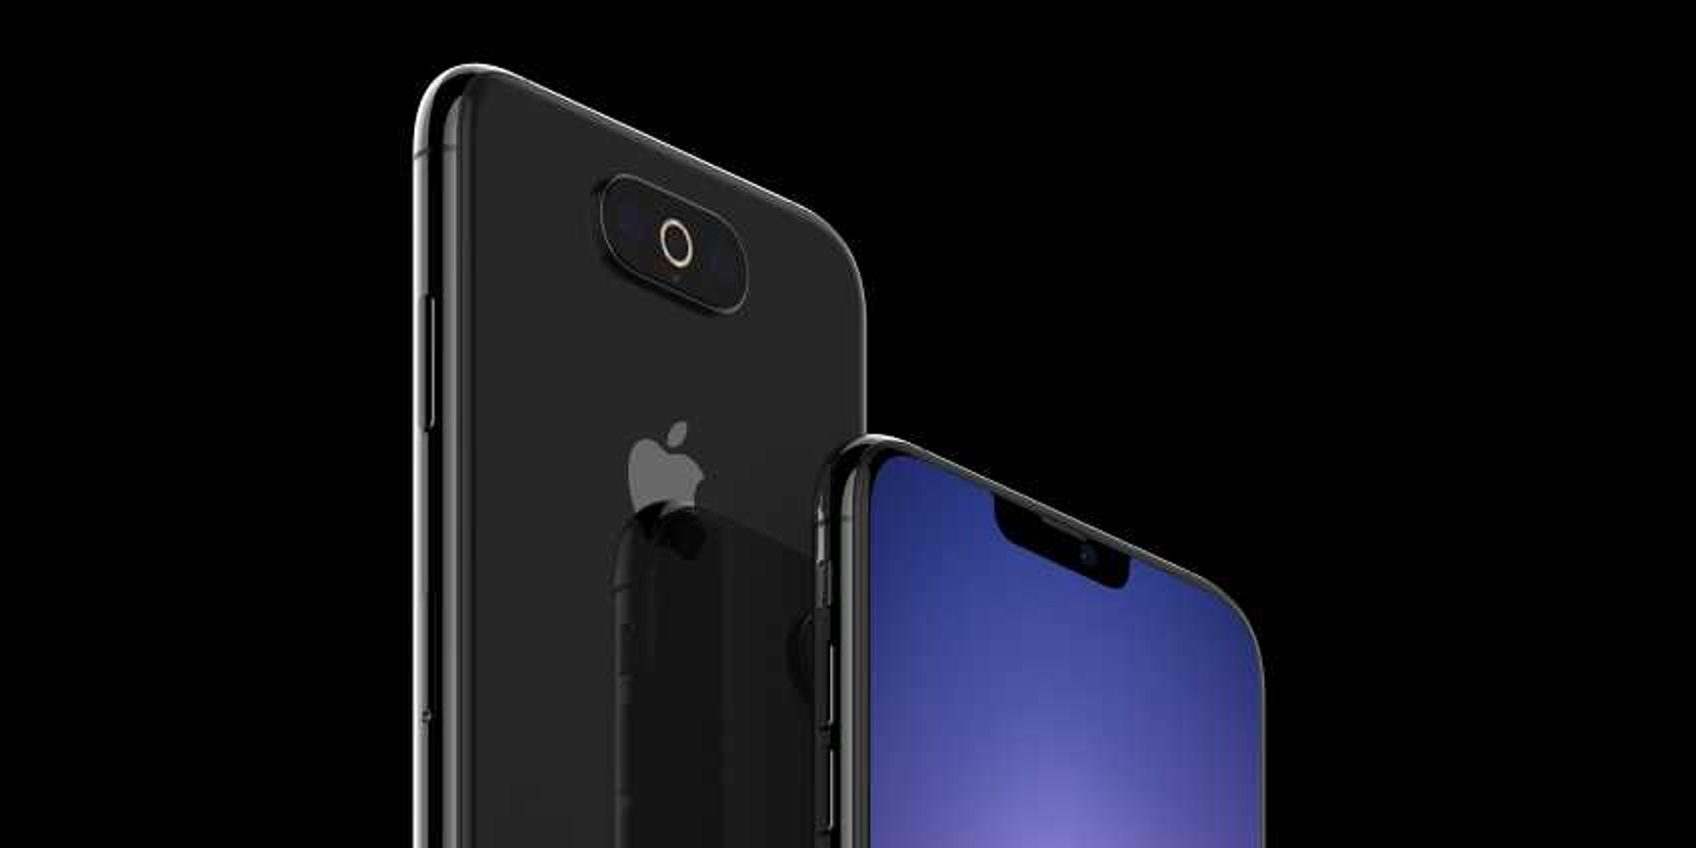 The 2019 iPhone 11 just leaked and its camera system will blow your mind